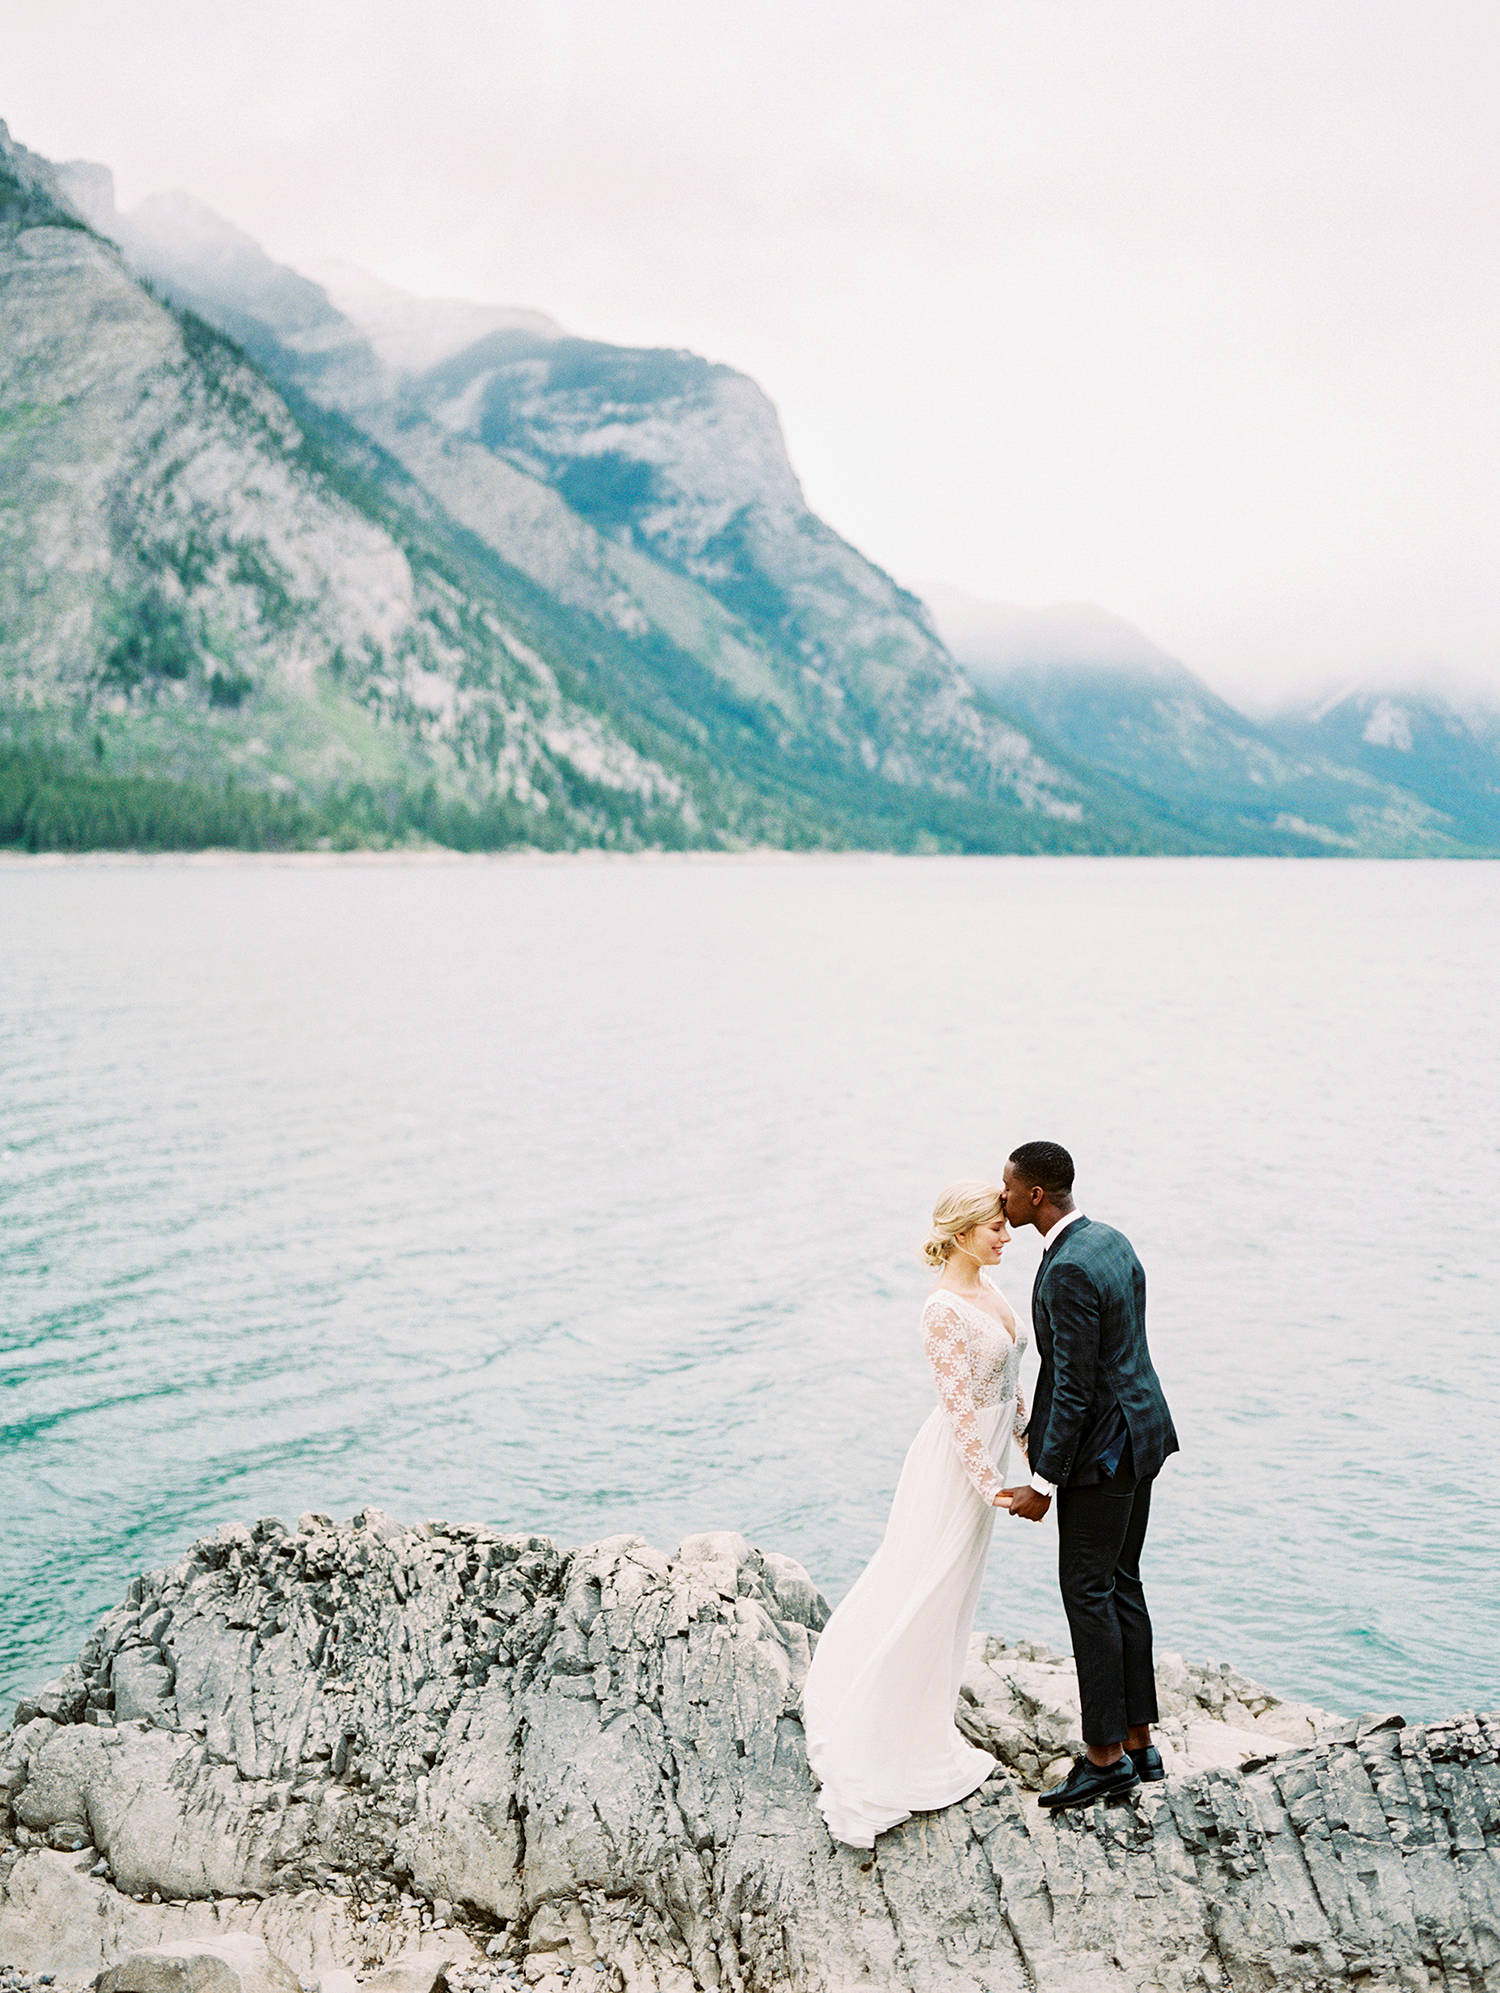 couple standing on rock overlooking water